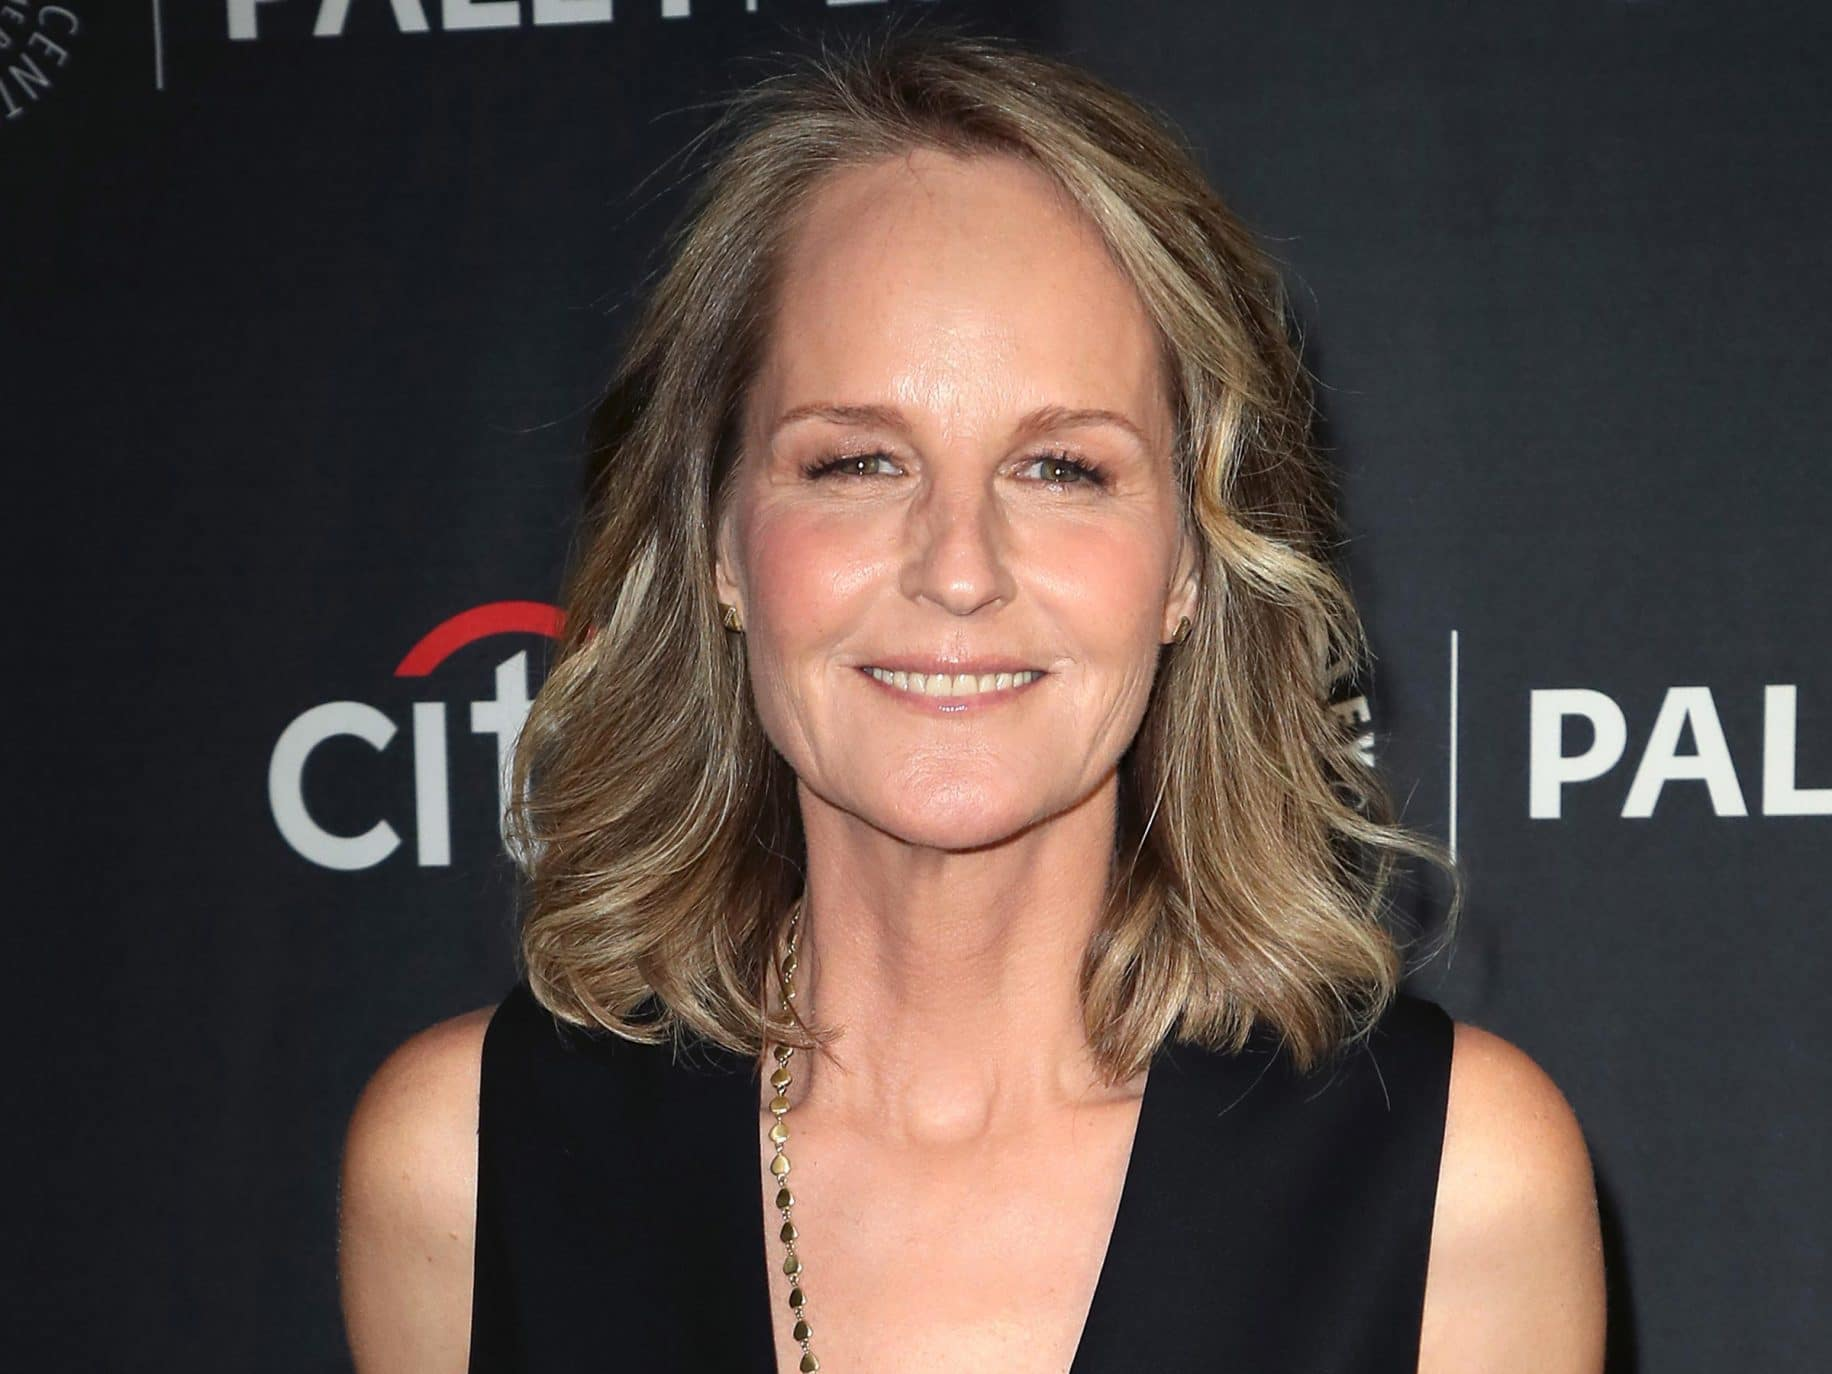 helen-hunt-accident-onitsha-fire-patrick-day-latest-news-global-world-stories-thursday-october-2019-style-rave